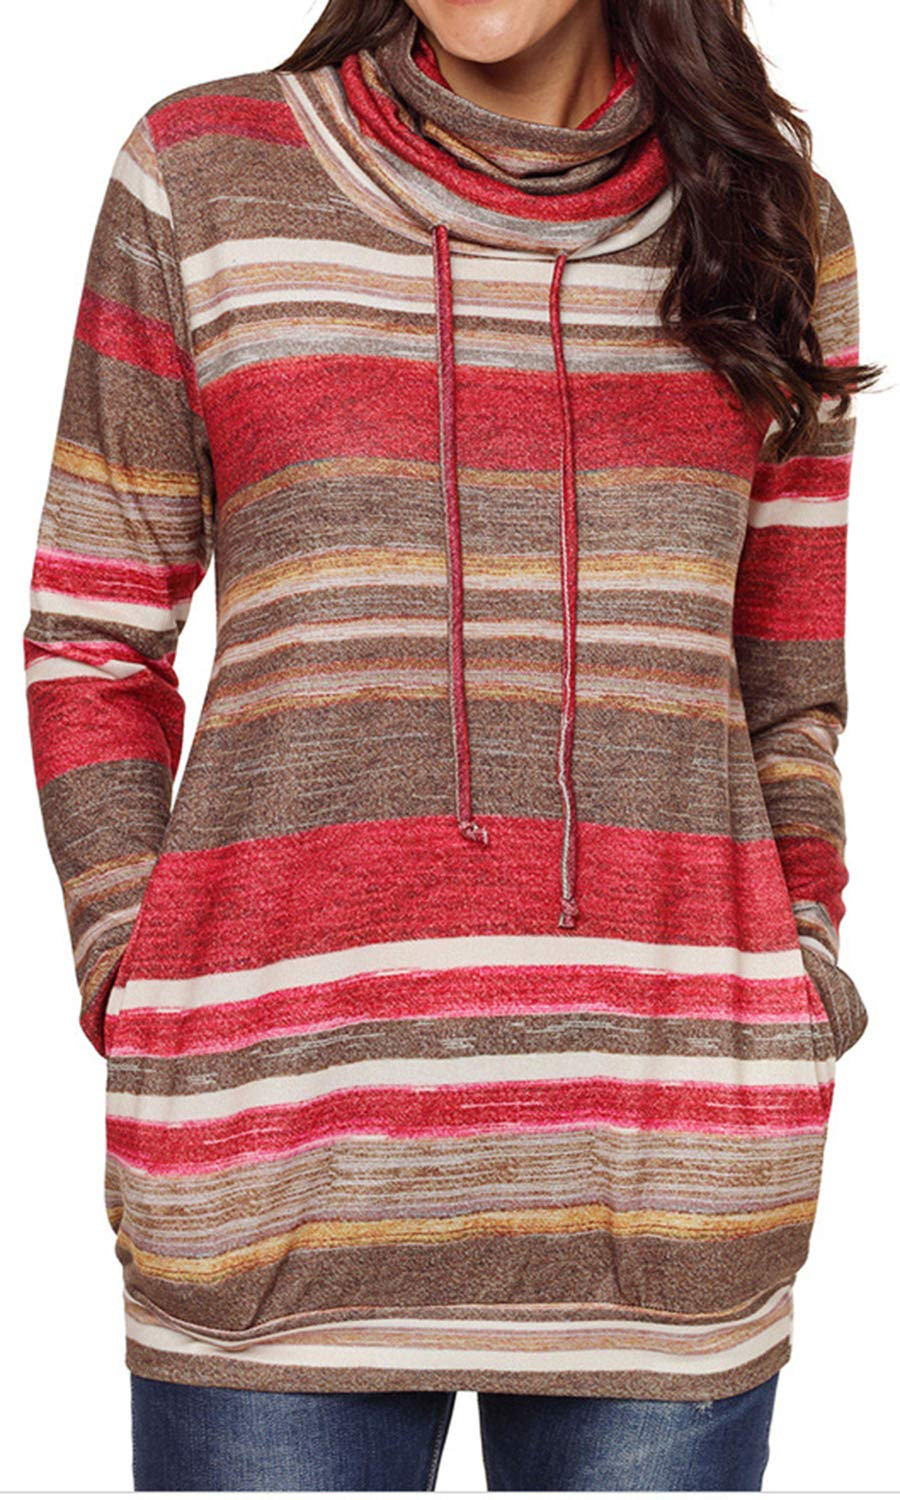 Bodycon4U Womens Striped Cowl Neck Drawstring Long Sleeve Pullover Sweatshirt Sweater Pockets Red XL by Bodycon4U (Image #1)